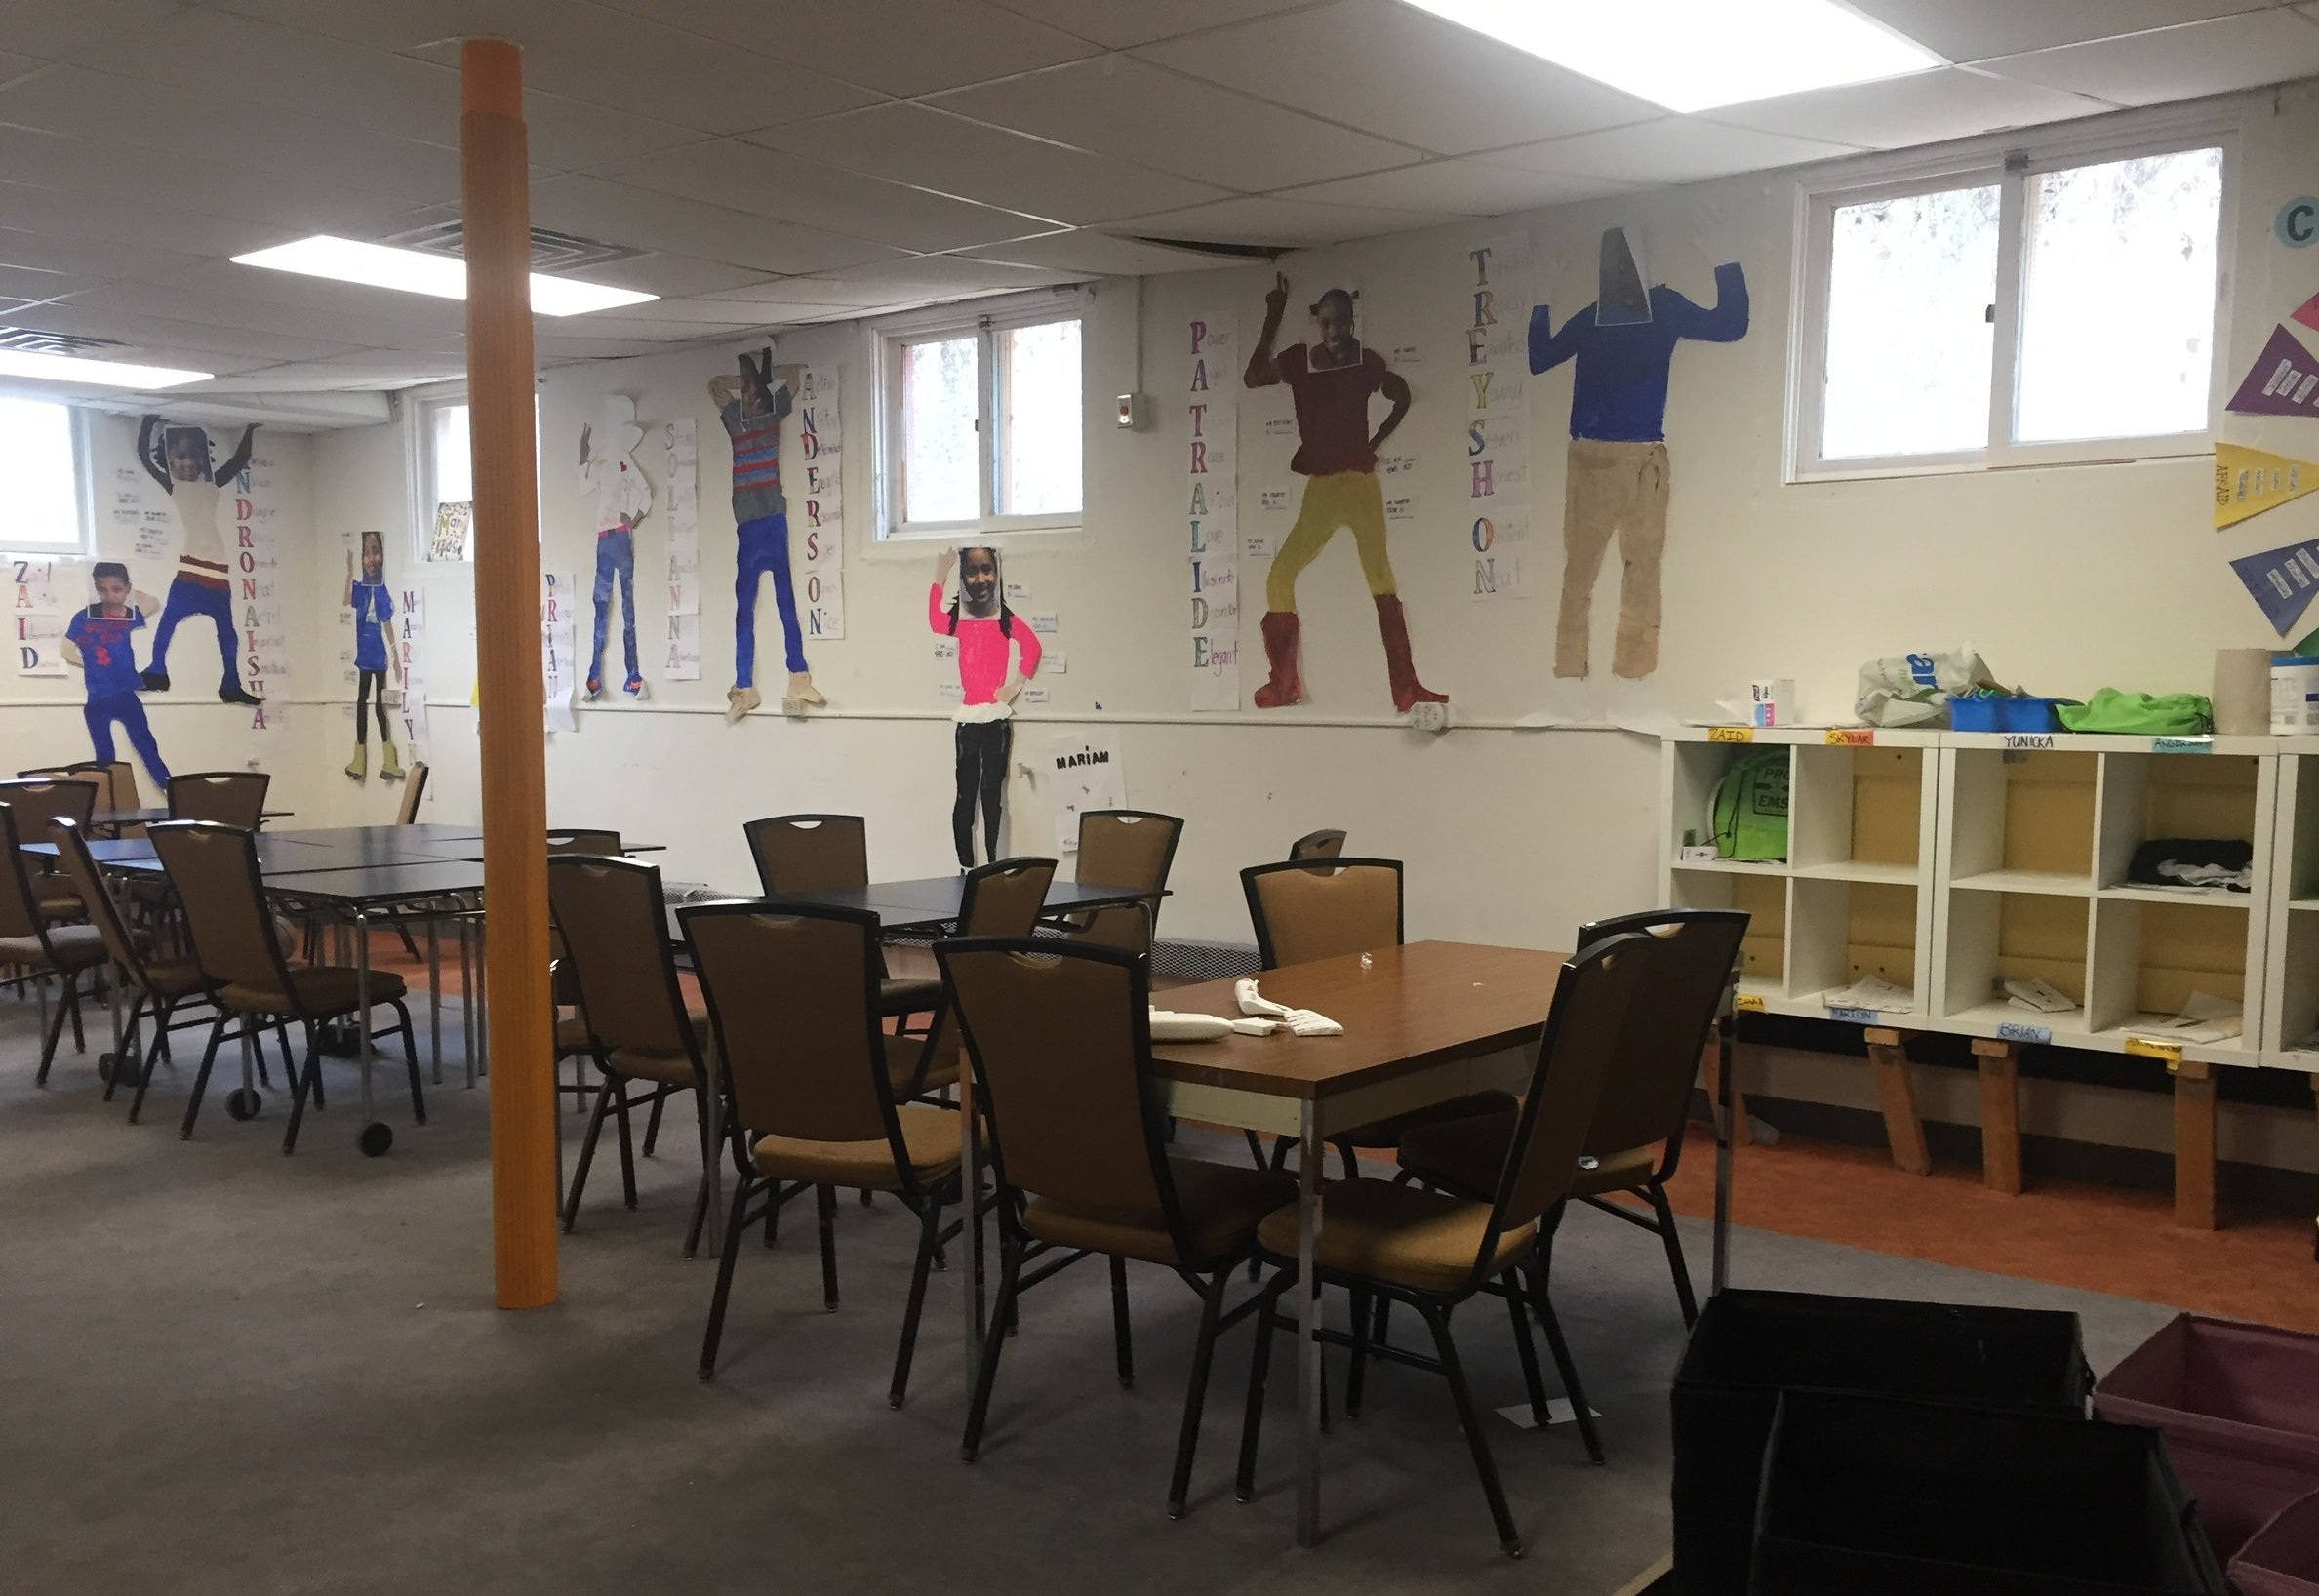 Room in the current childcare facility.